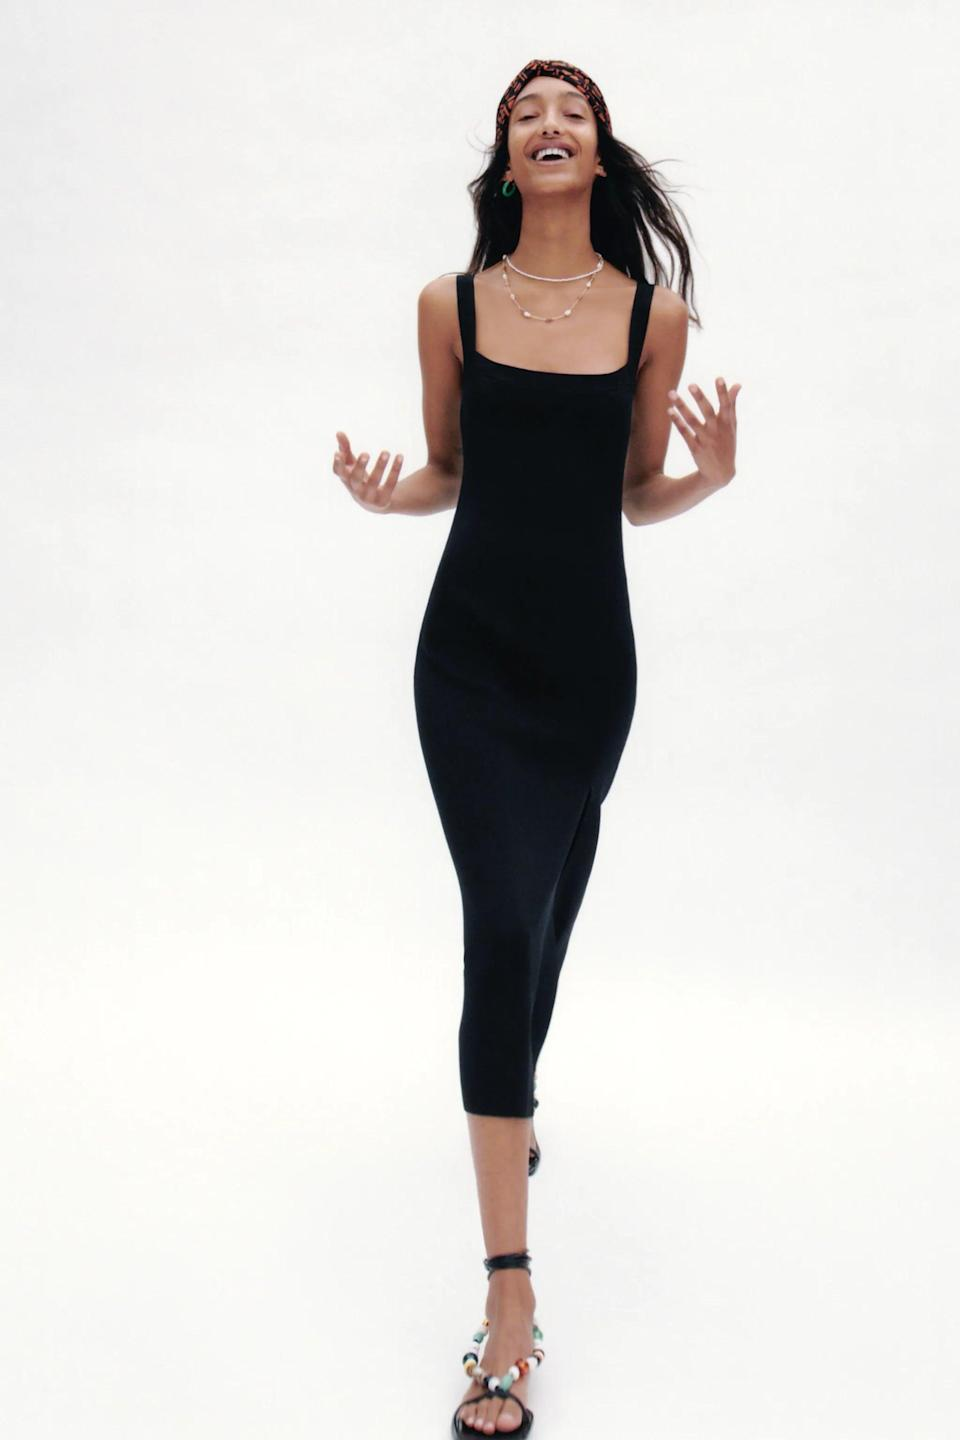 <p>Have a date night coming up? This <span>Zara Knit Dress With Straps</span> ($50) will make you stand out.</p>